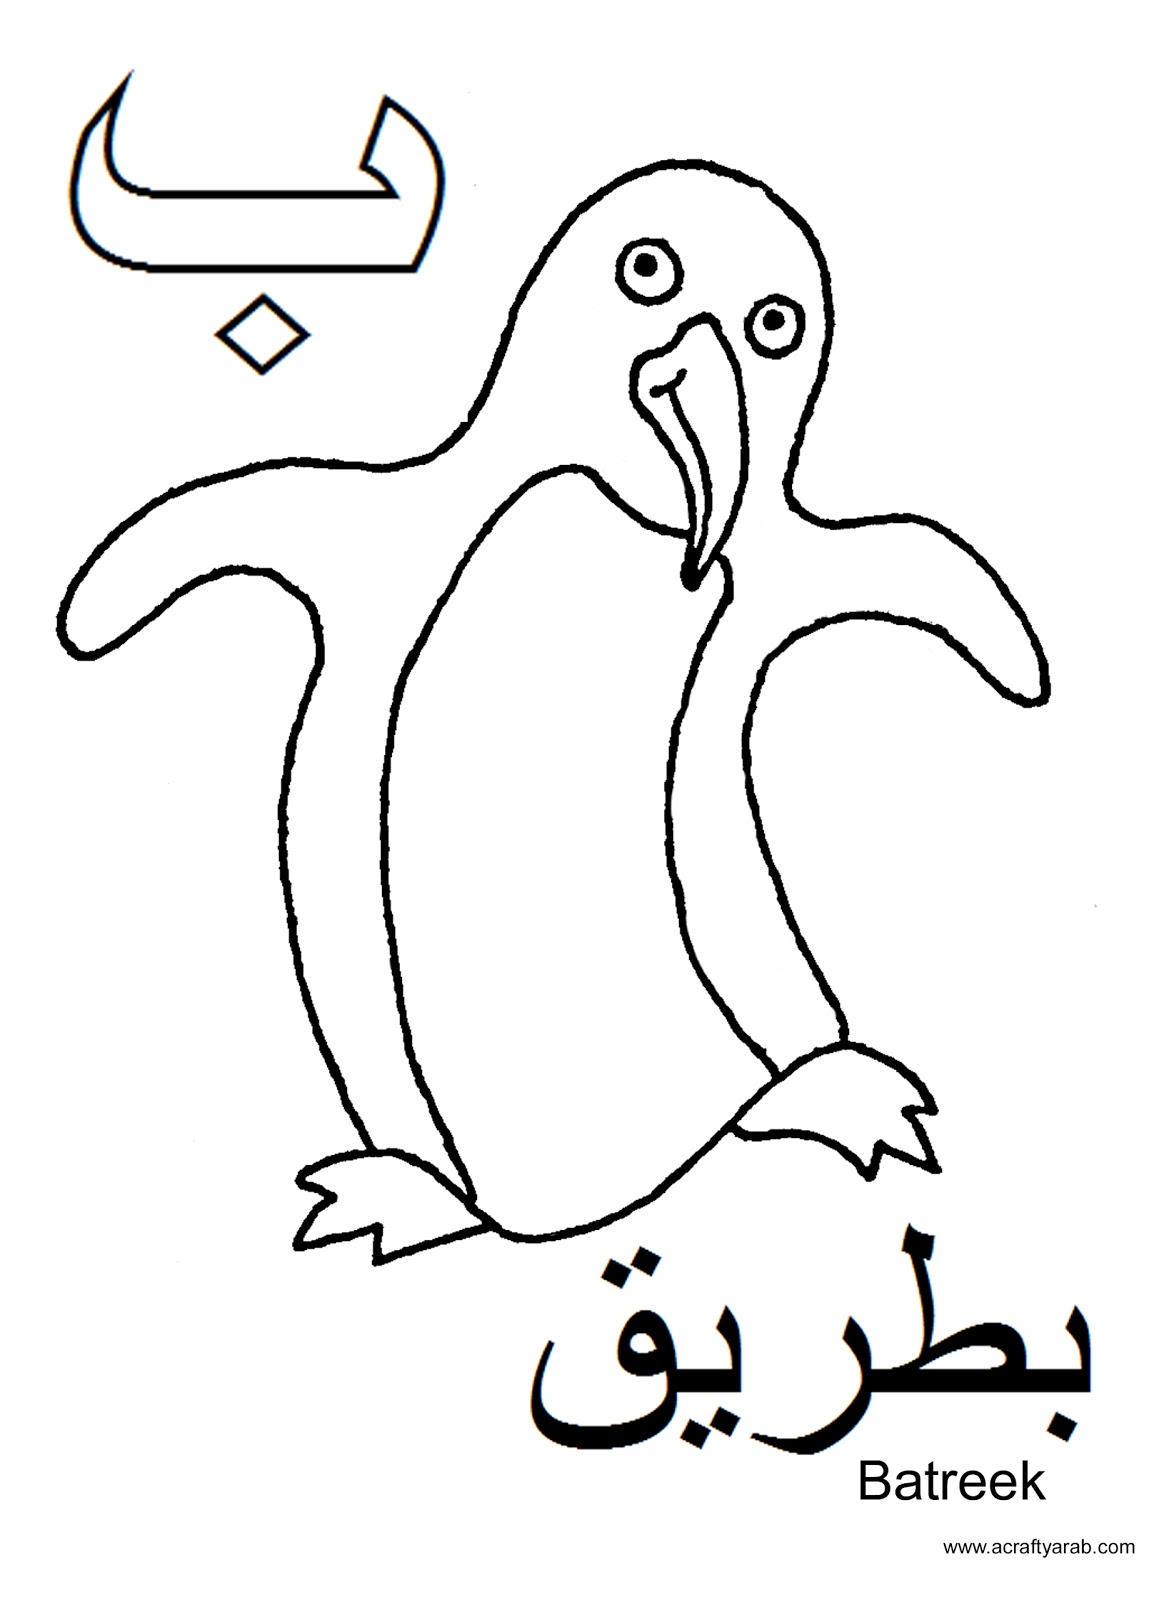 Coloring Pages Arabic Alphabet : Free arabic letters coloring pages